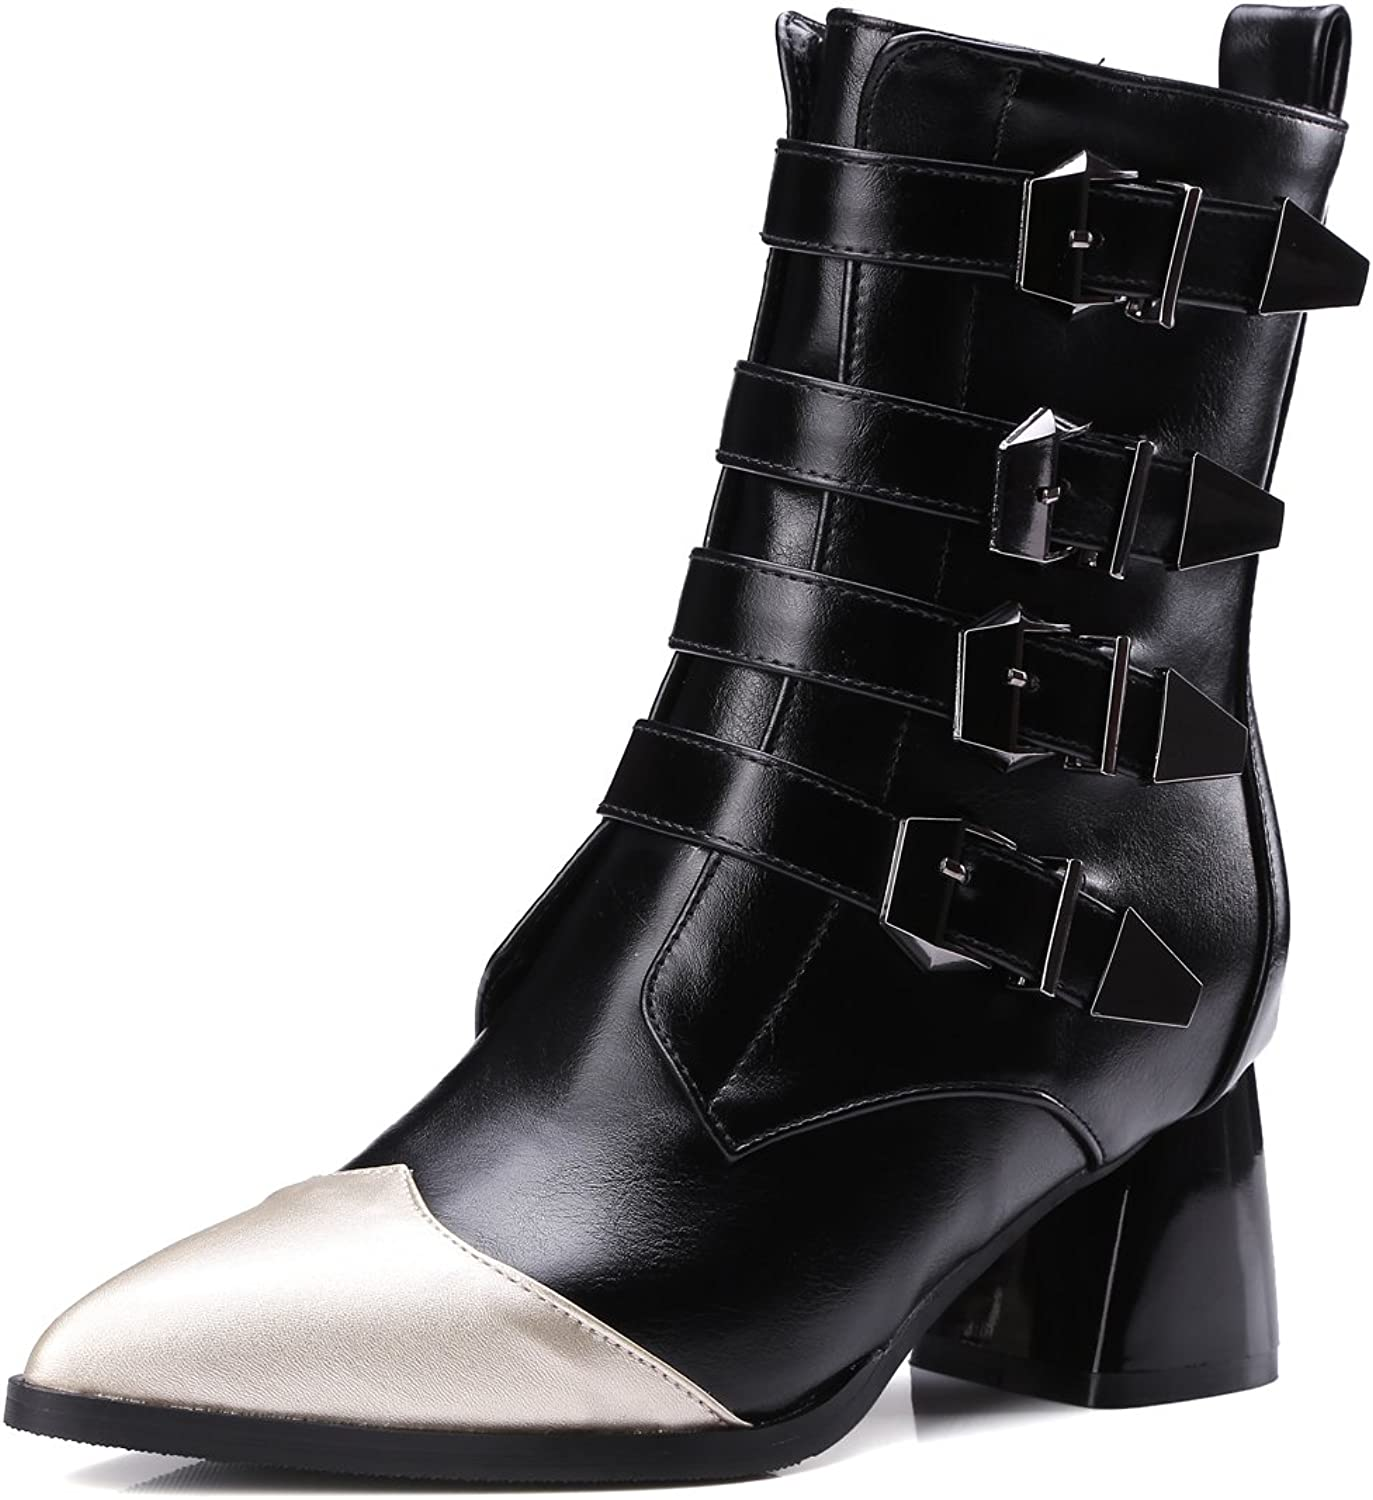 Themost Ankle Boots,Womens Chunky Heel Buckle Boot Winter Side Zipper Booties